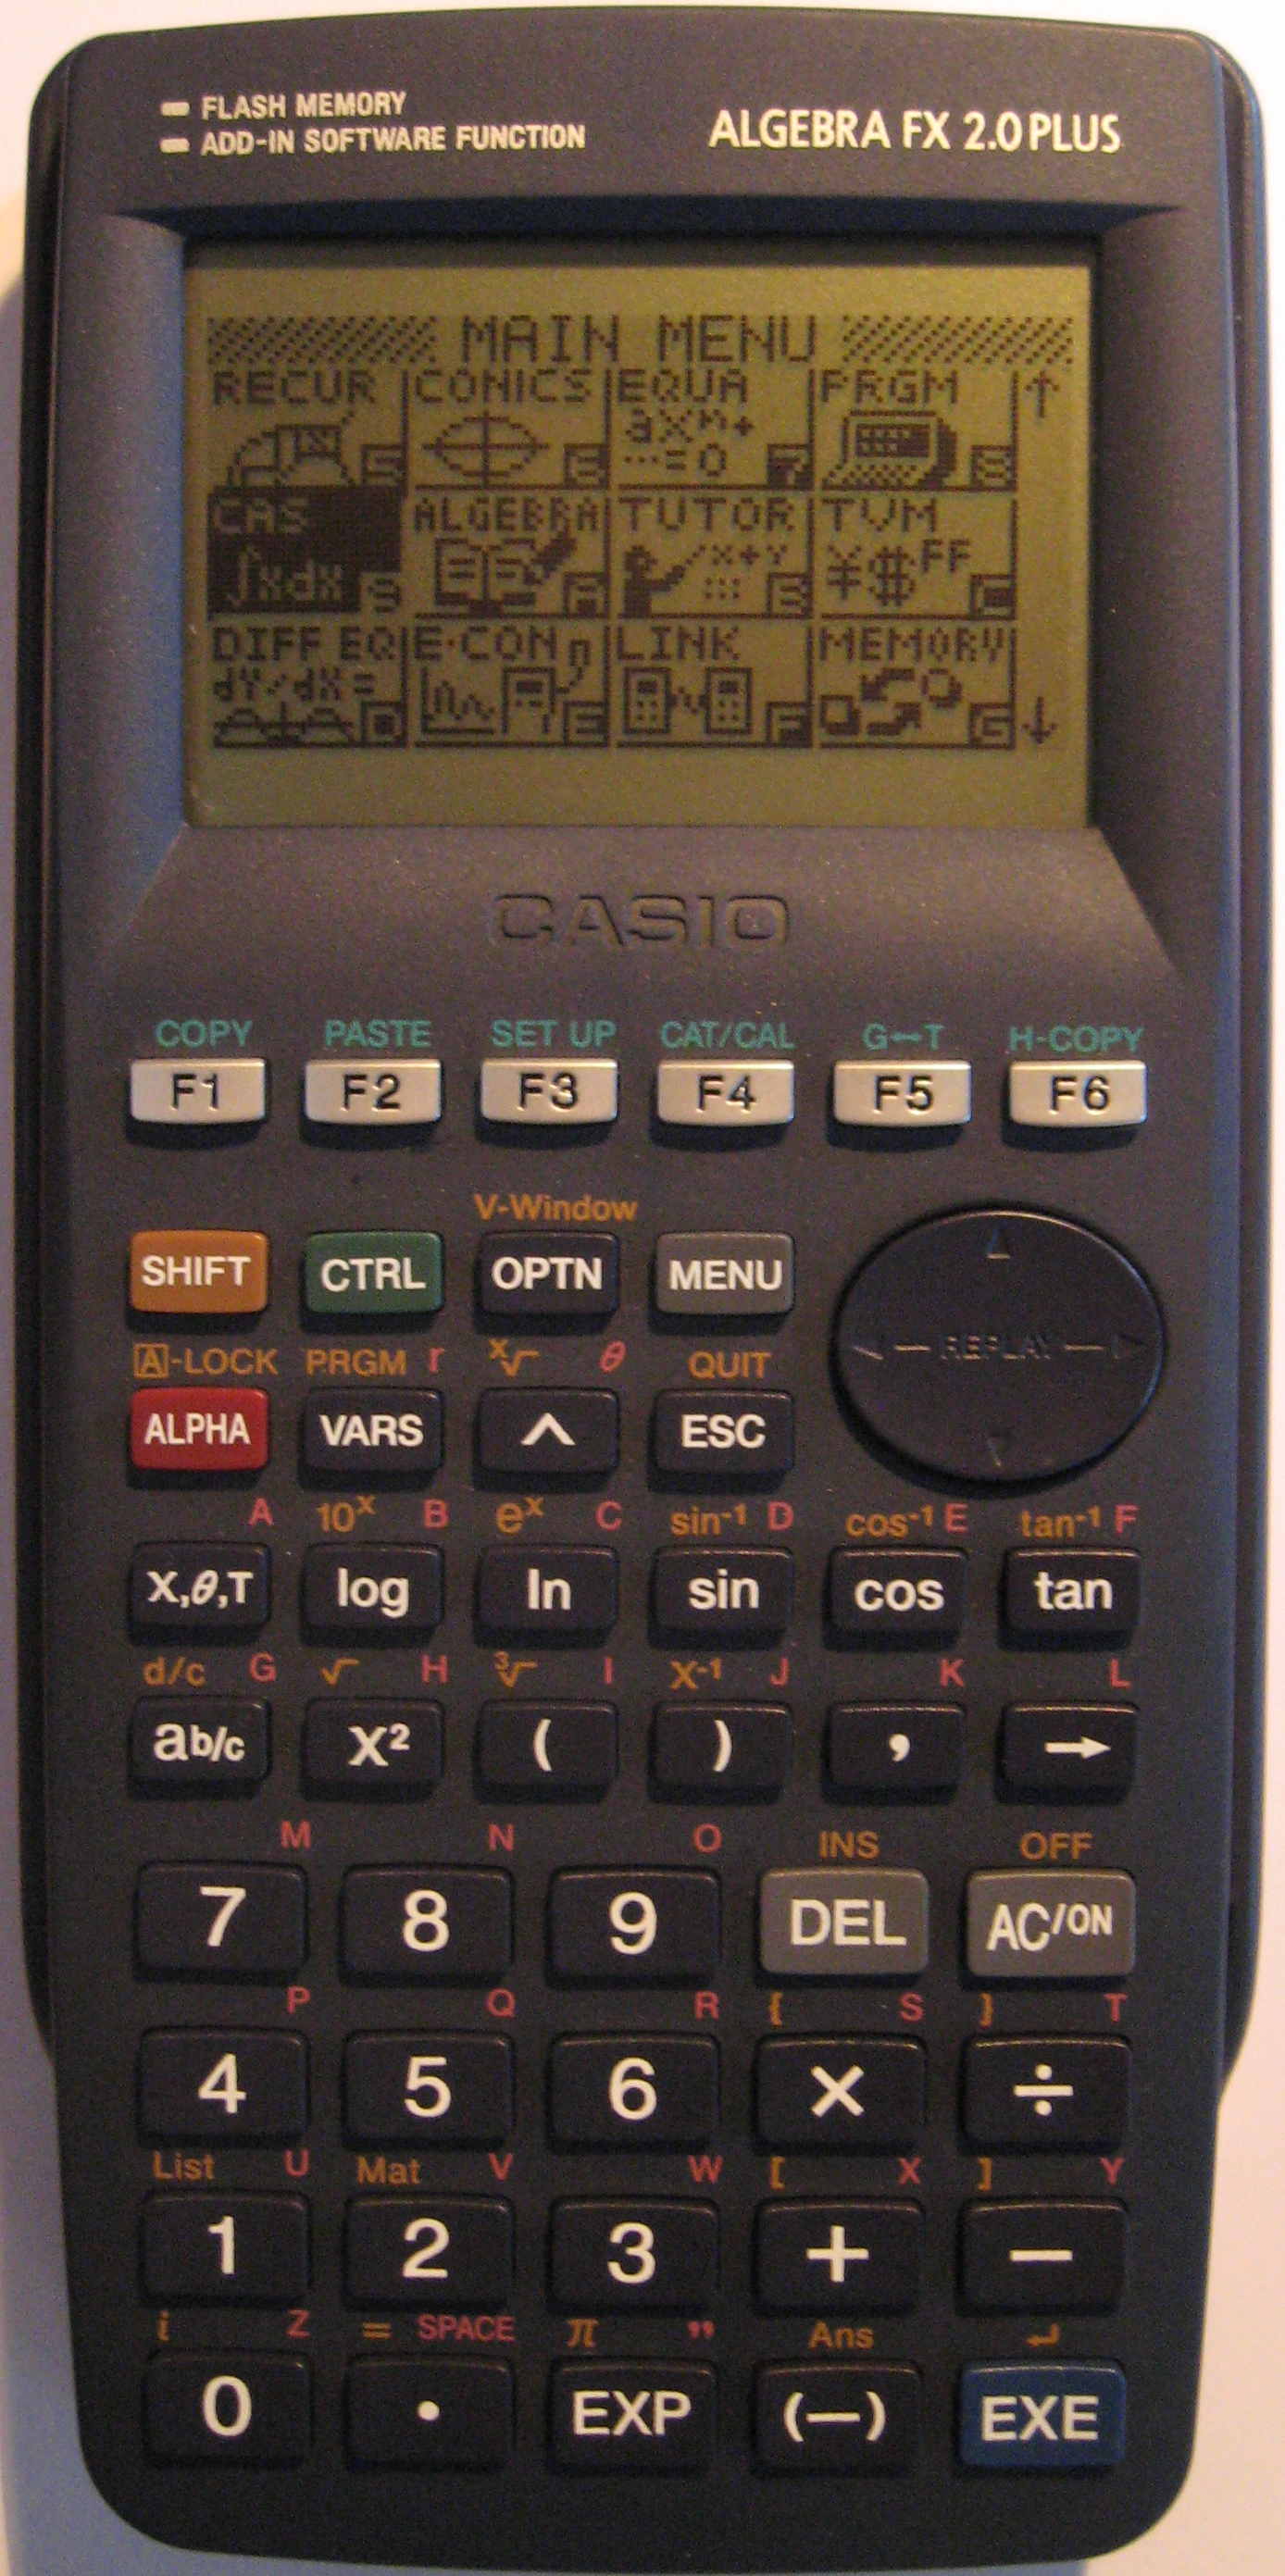 Casio privia px 300 manual: full version free software download -.